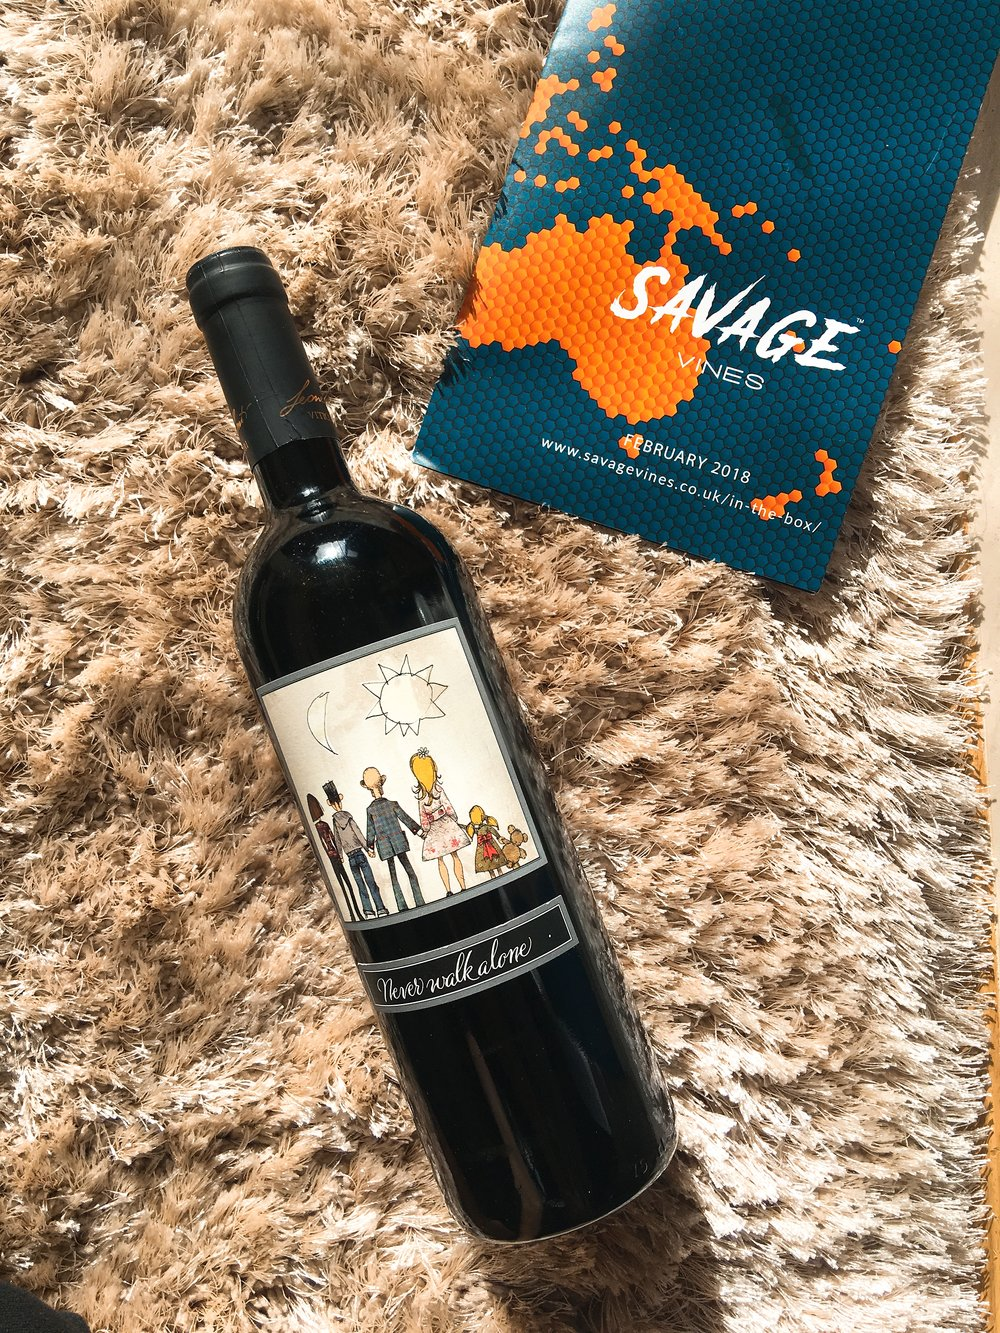 Savage wines review